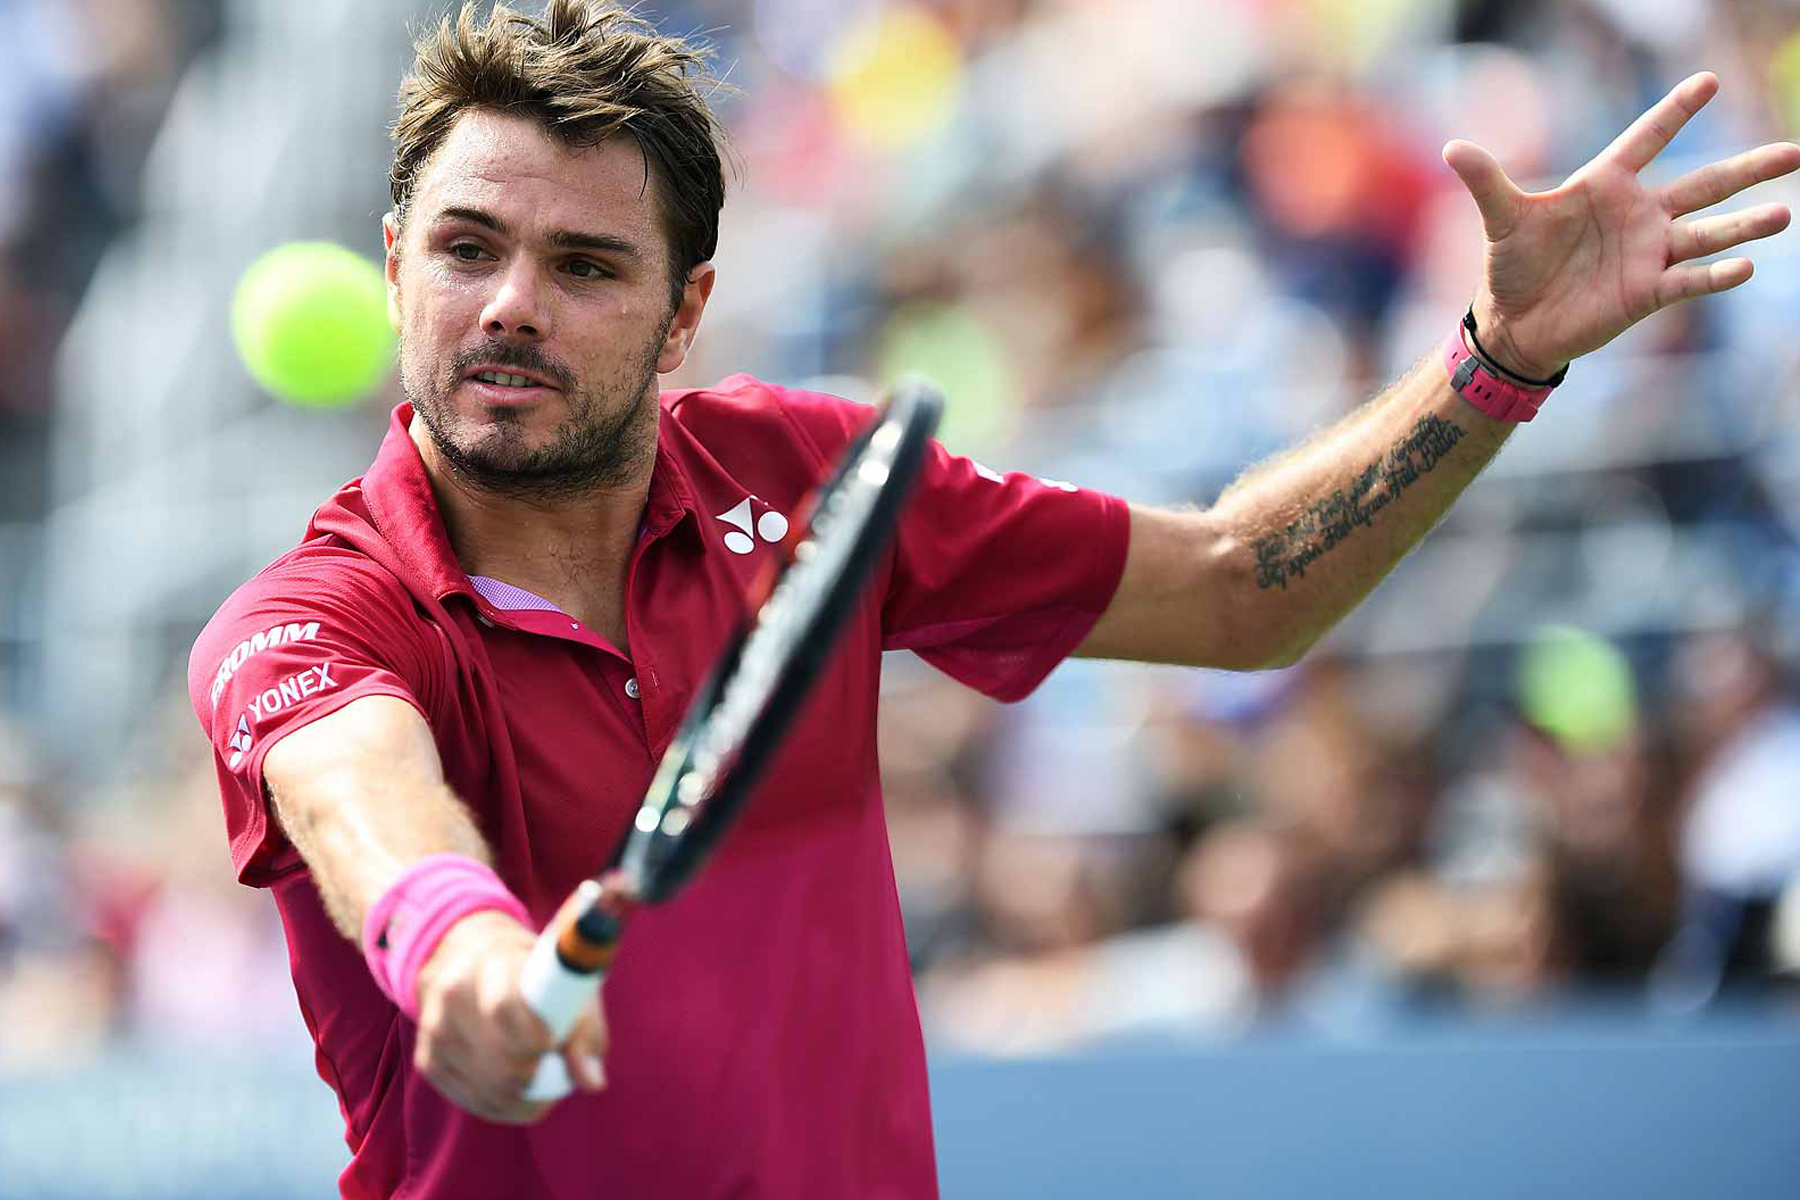 Wawrinka renuncia a Indian Wells y Miami